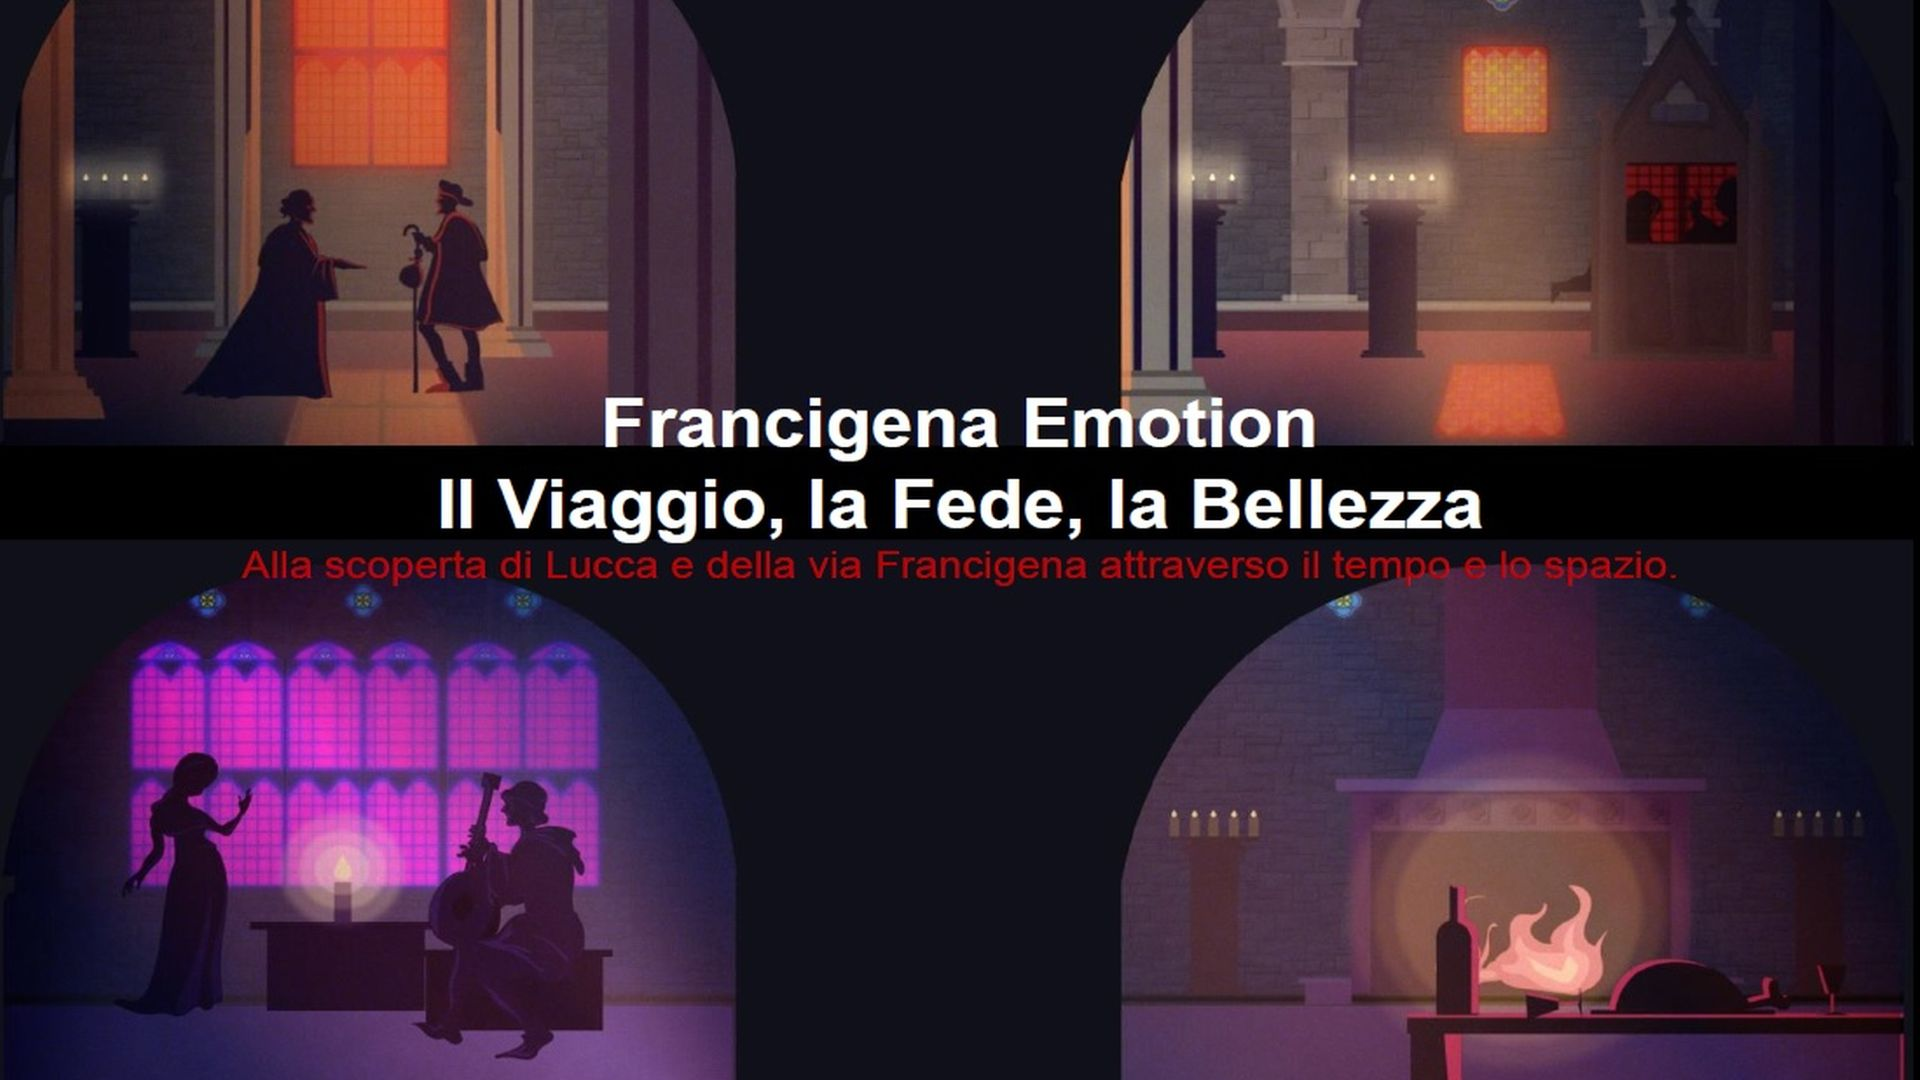 grafica di francigna entry point francigena emotions